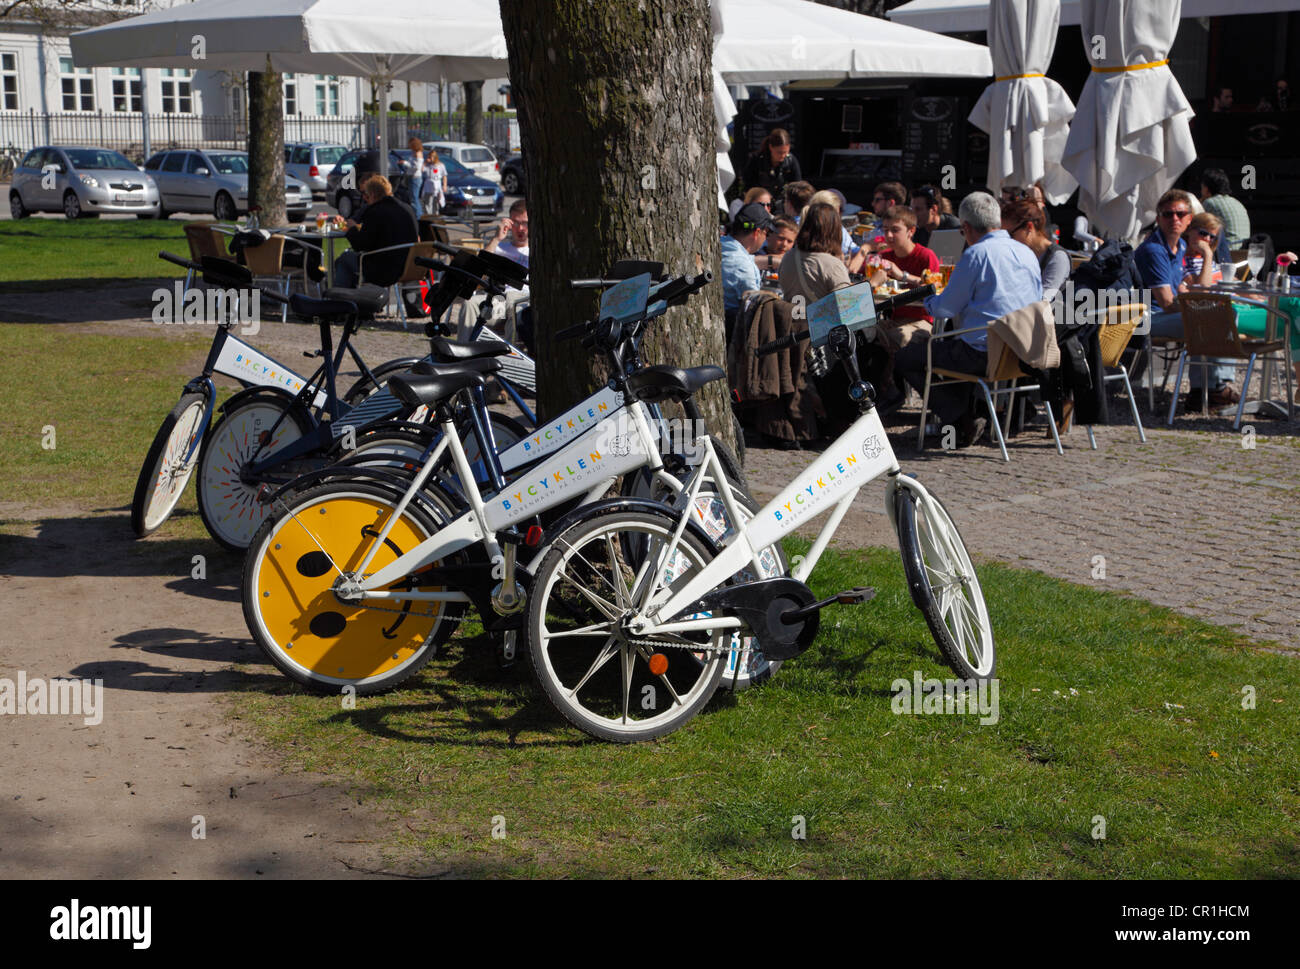 free-city-bikes-bycyklen-parked-up-a-tre